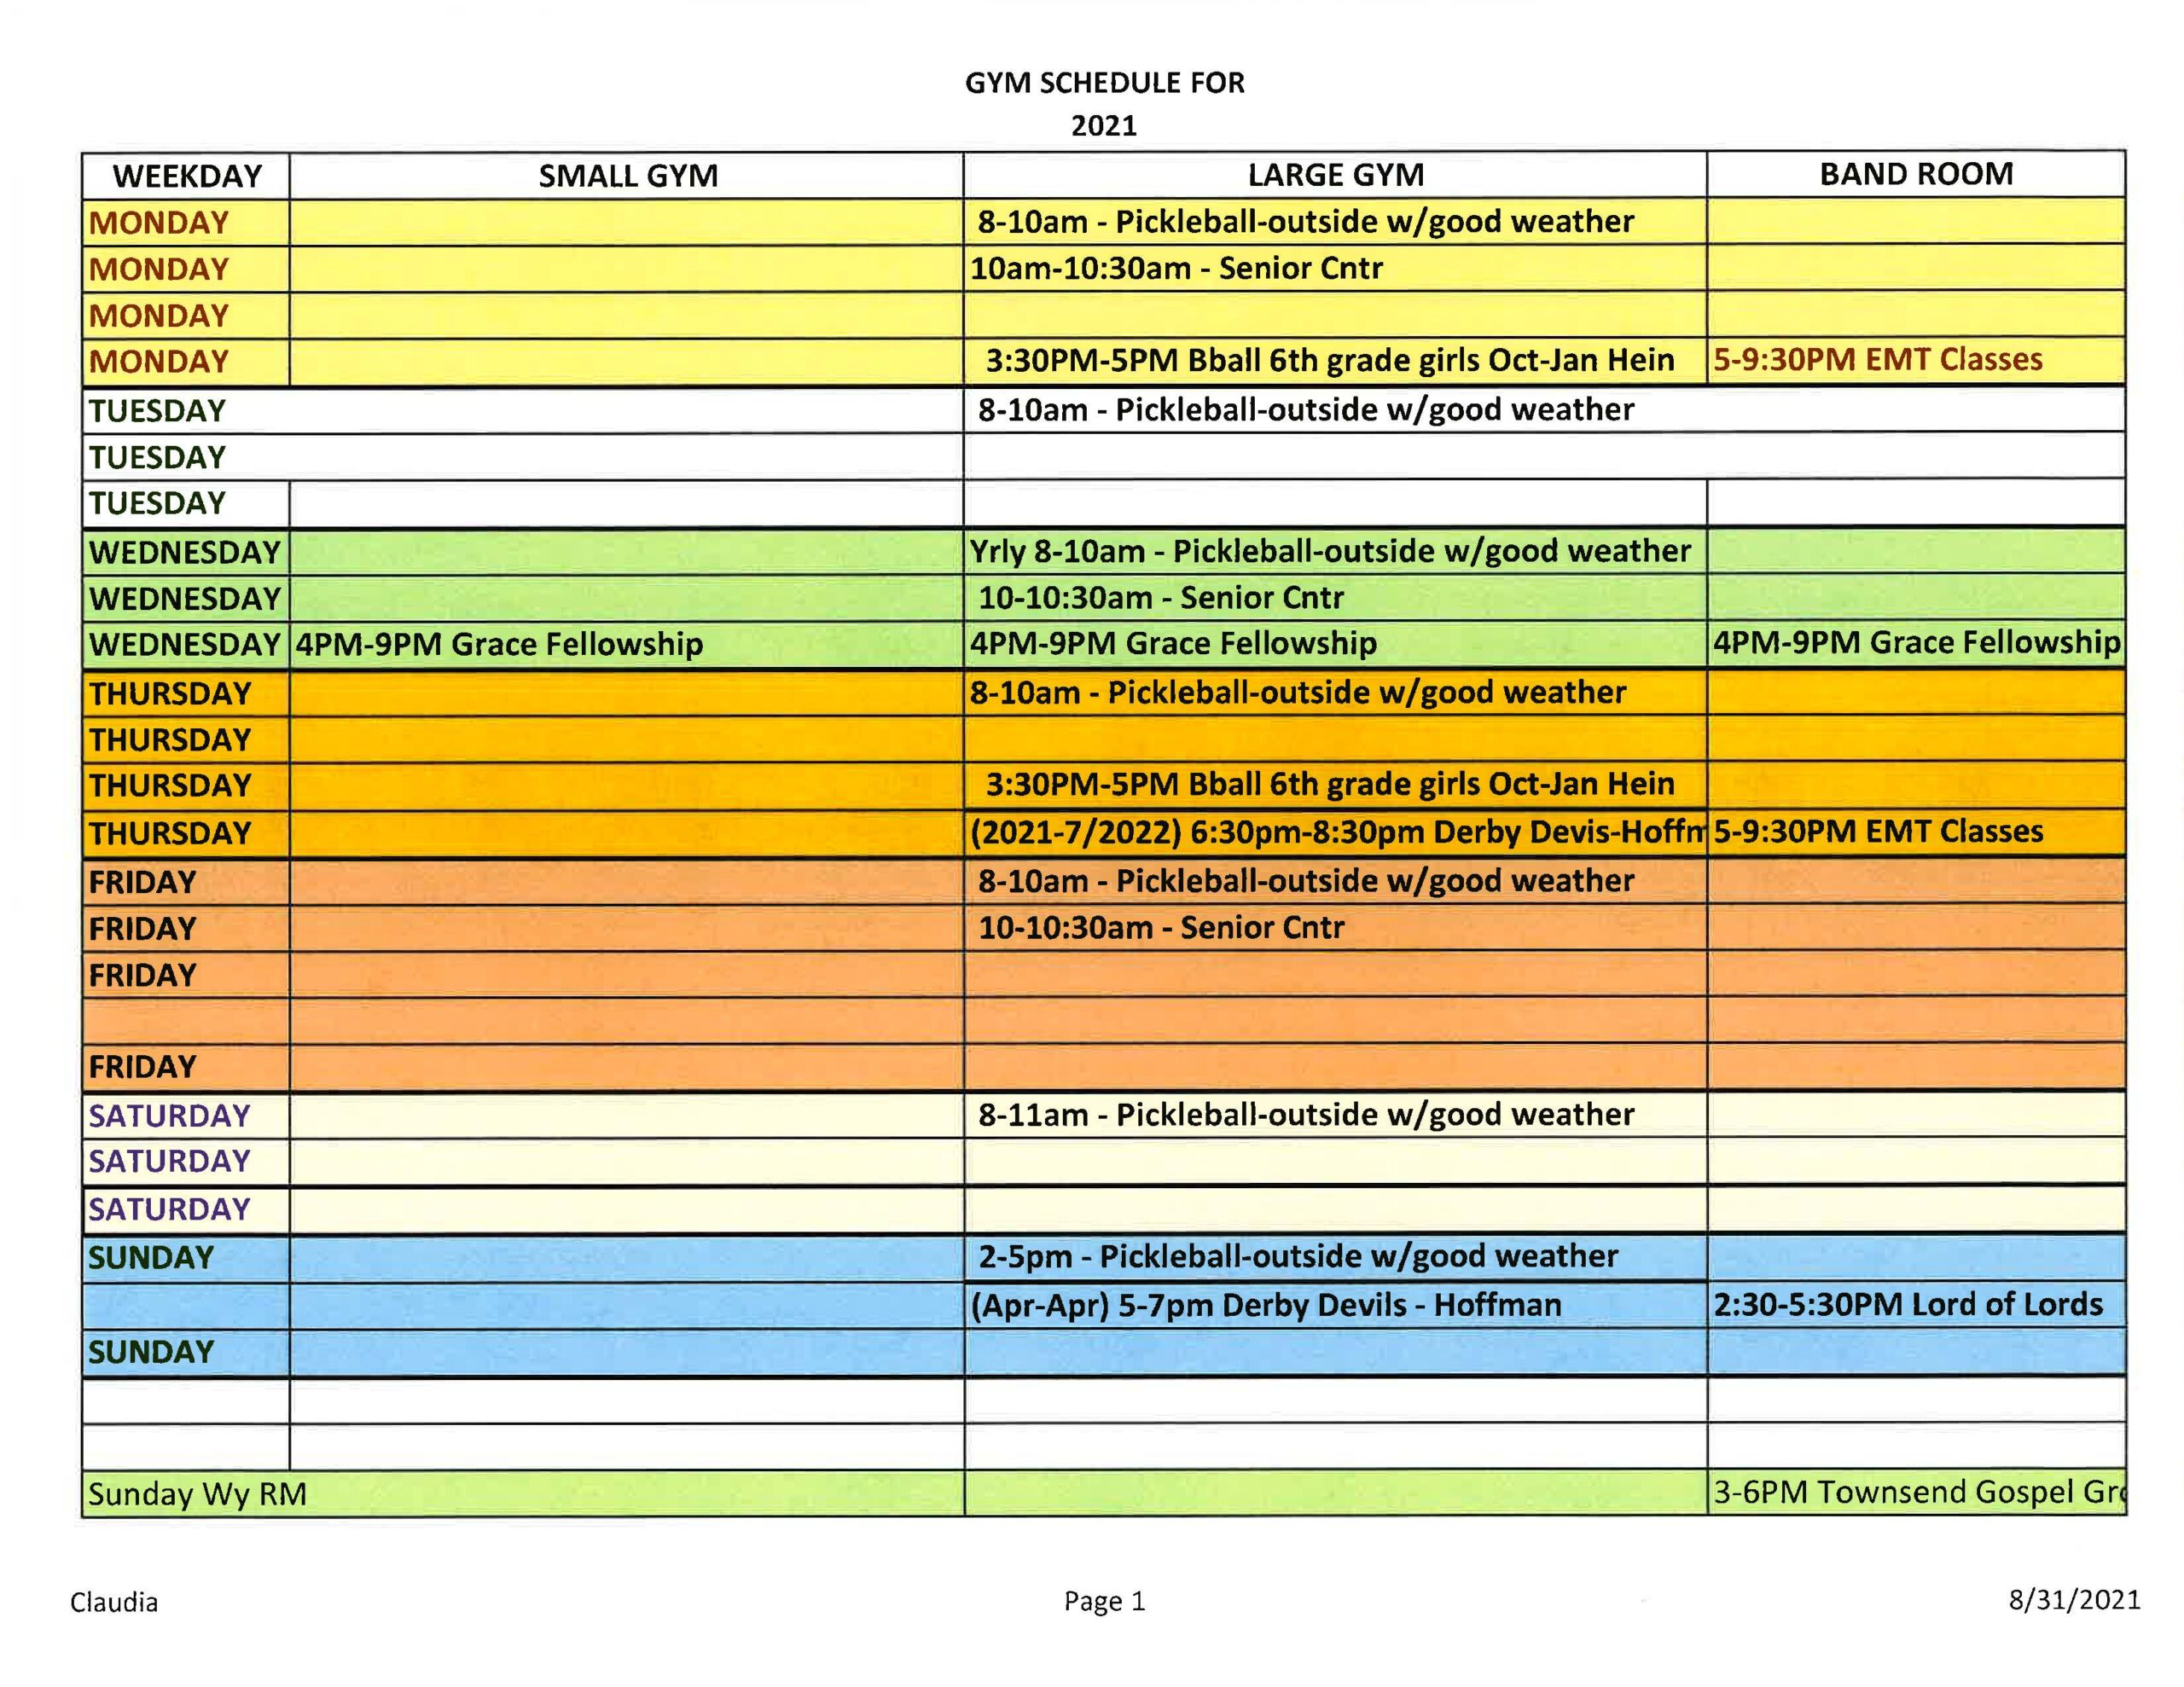 bomber-mountain-gym-schedule-20-21